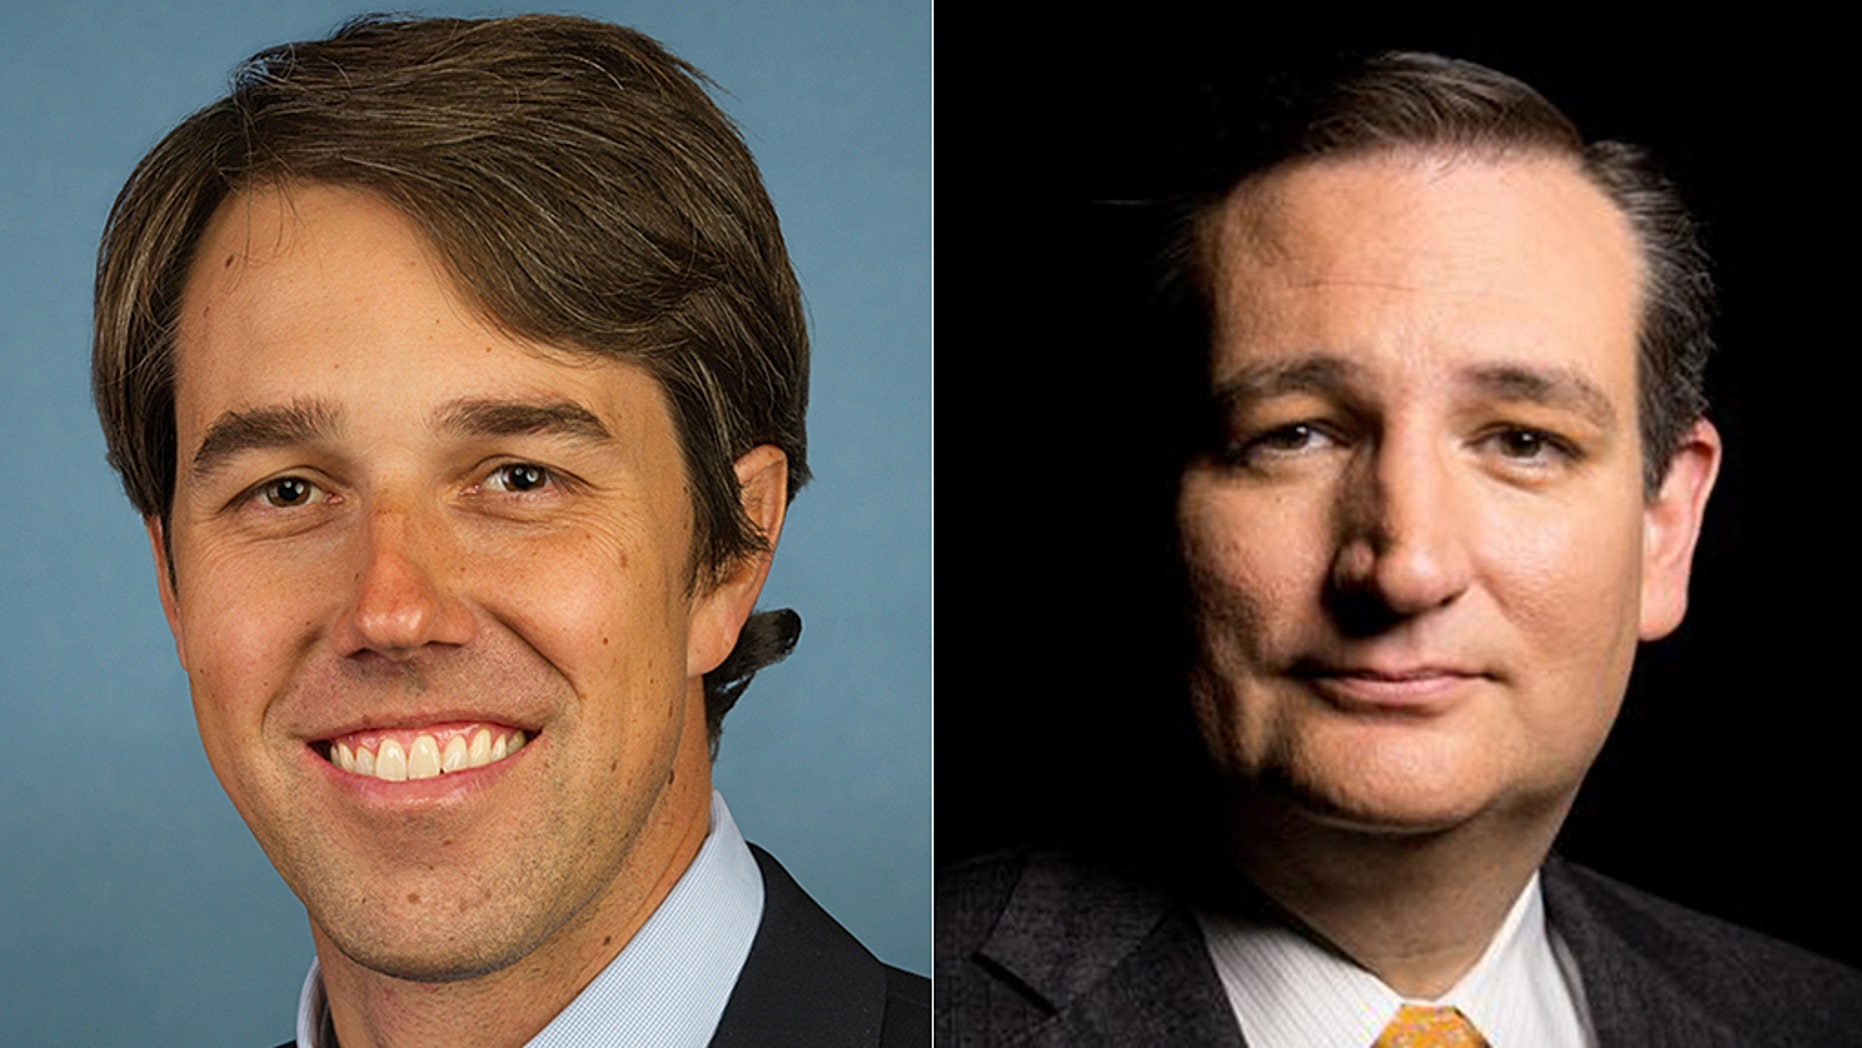 Sen. Ted Cruz (right) is in a tough battle for re-election with Democratic Rep. Beto O'Rourke.